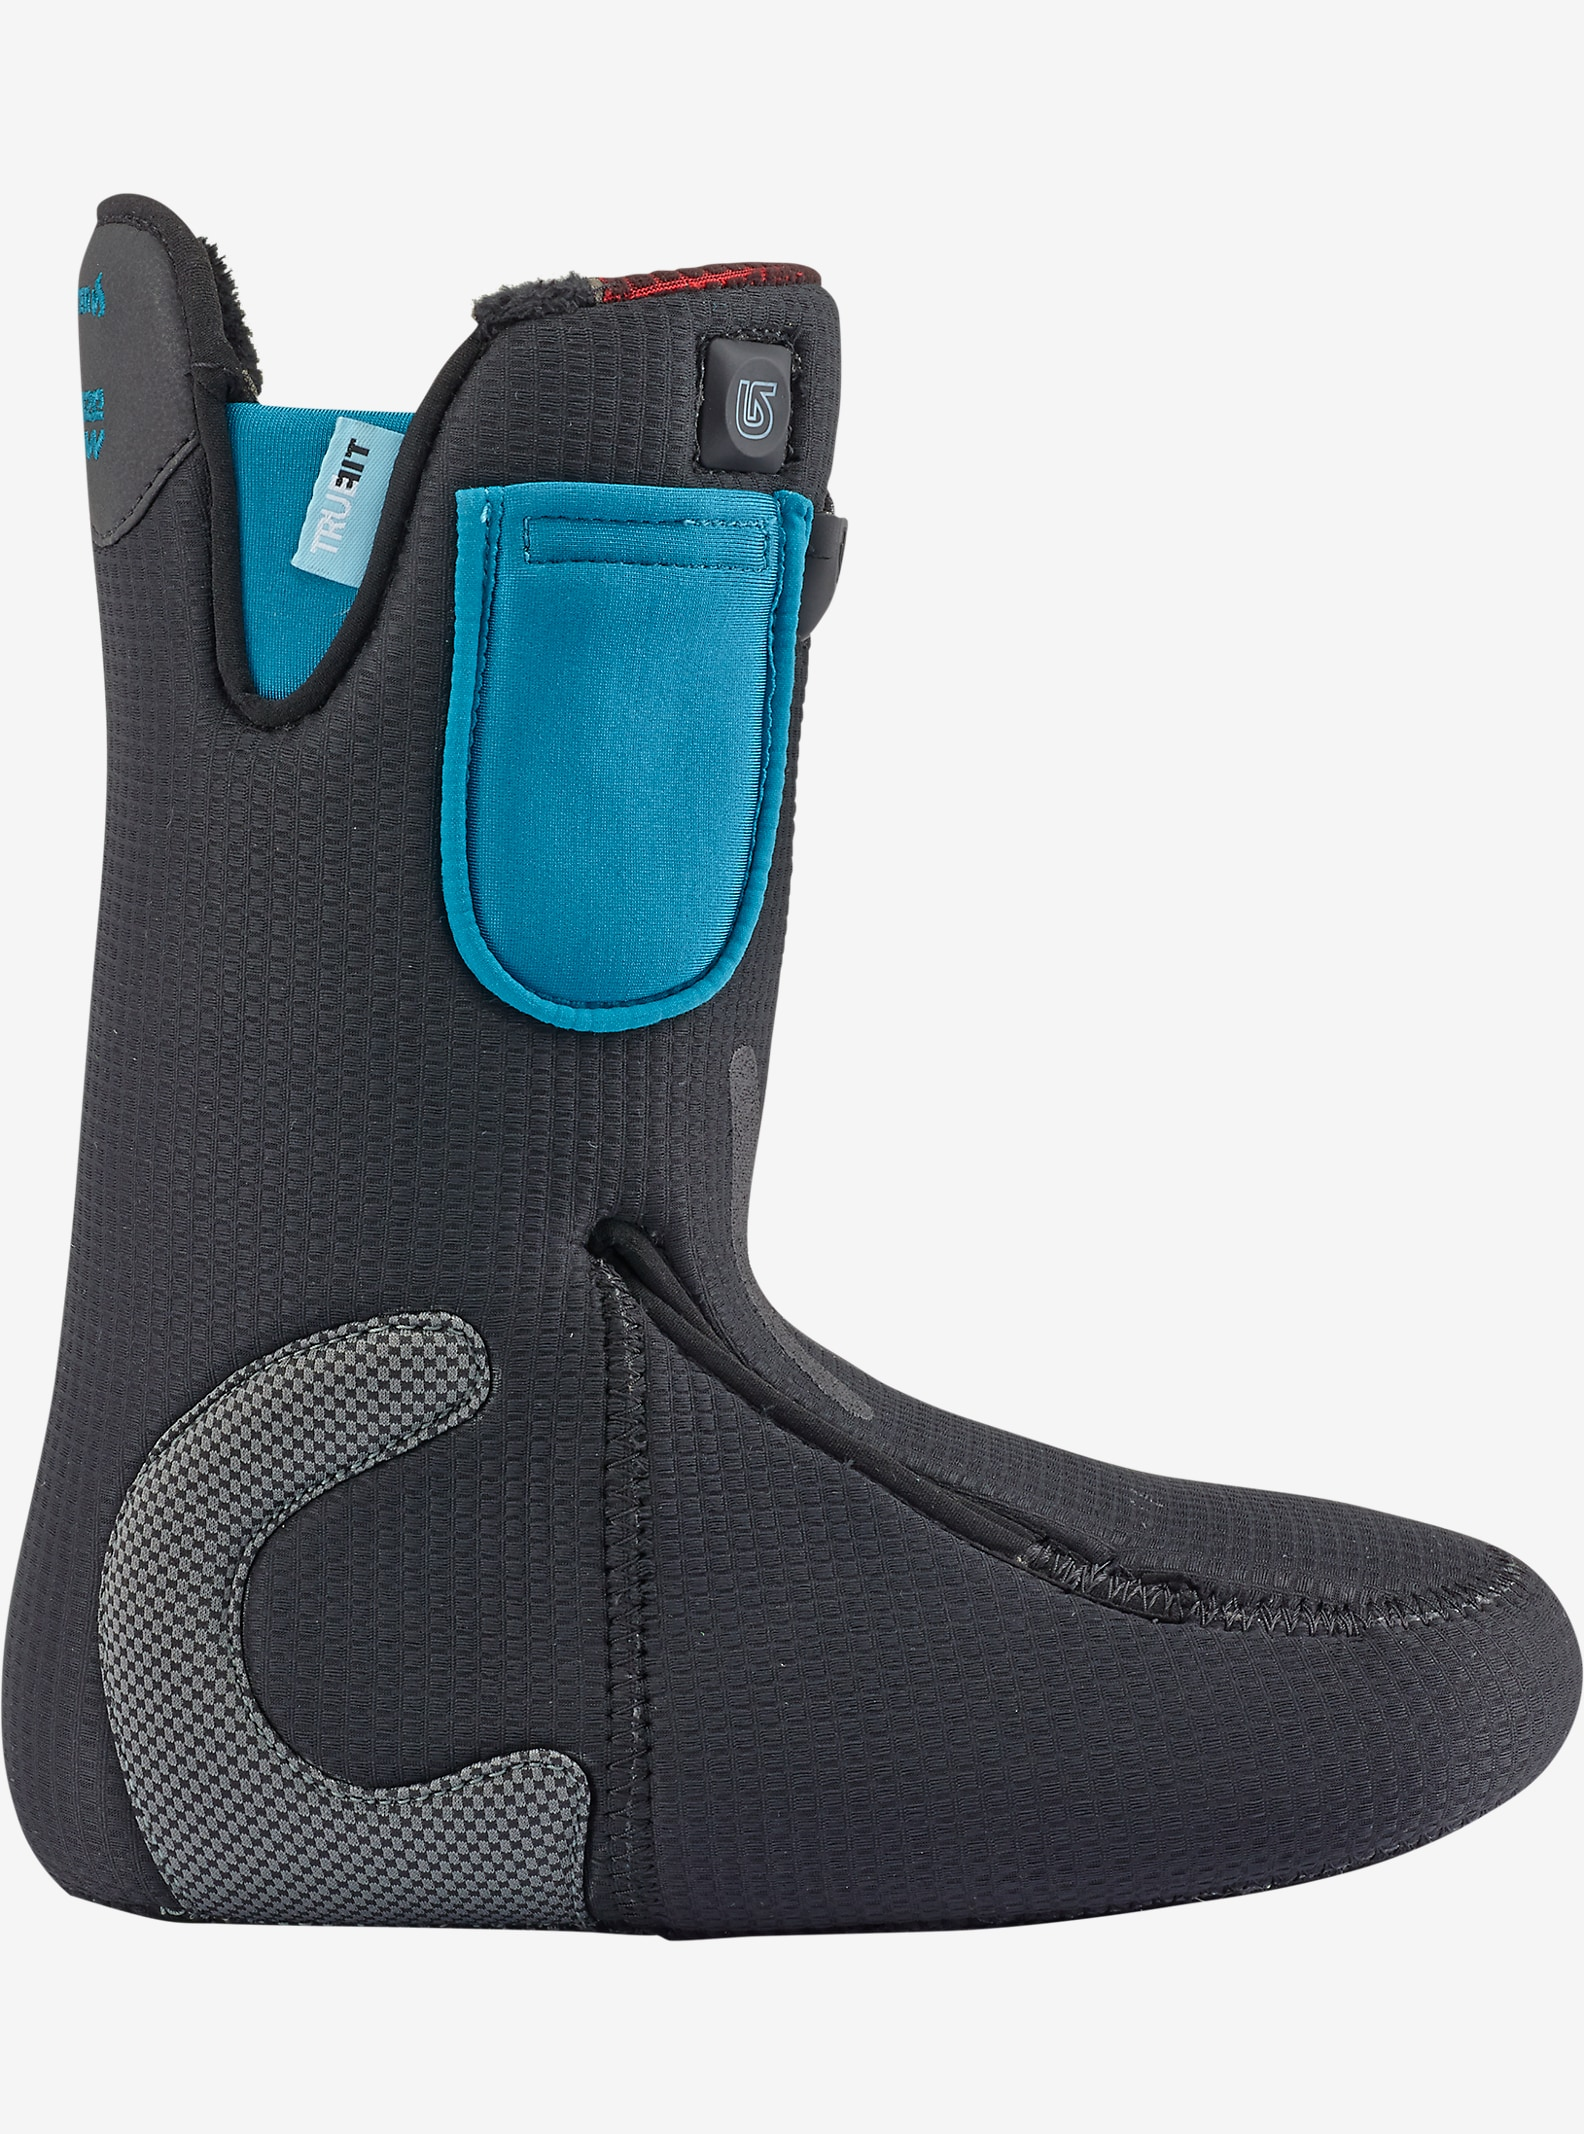 Burton Women's Toaster Snowboard Boot Liner shown in Black